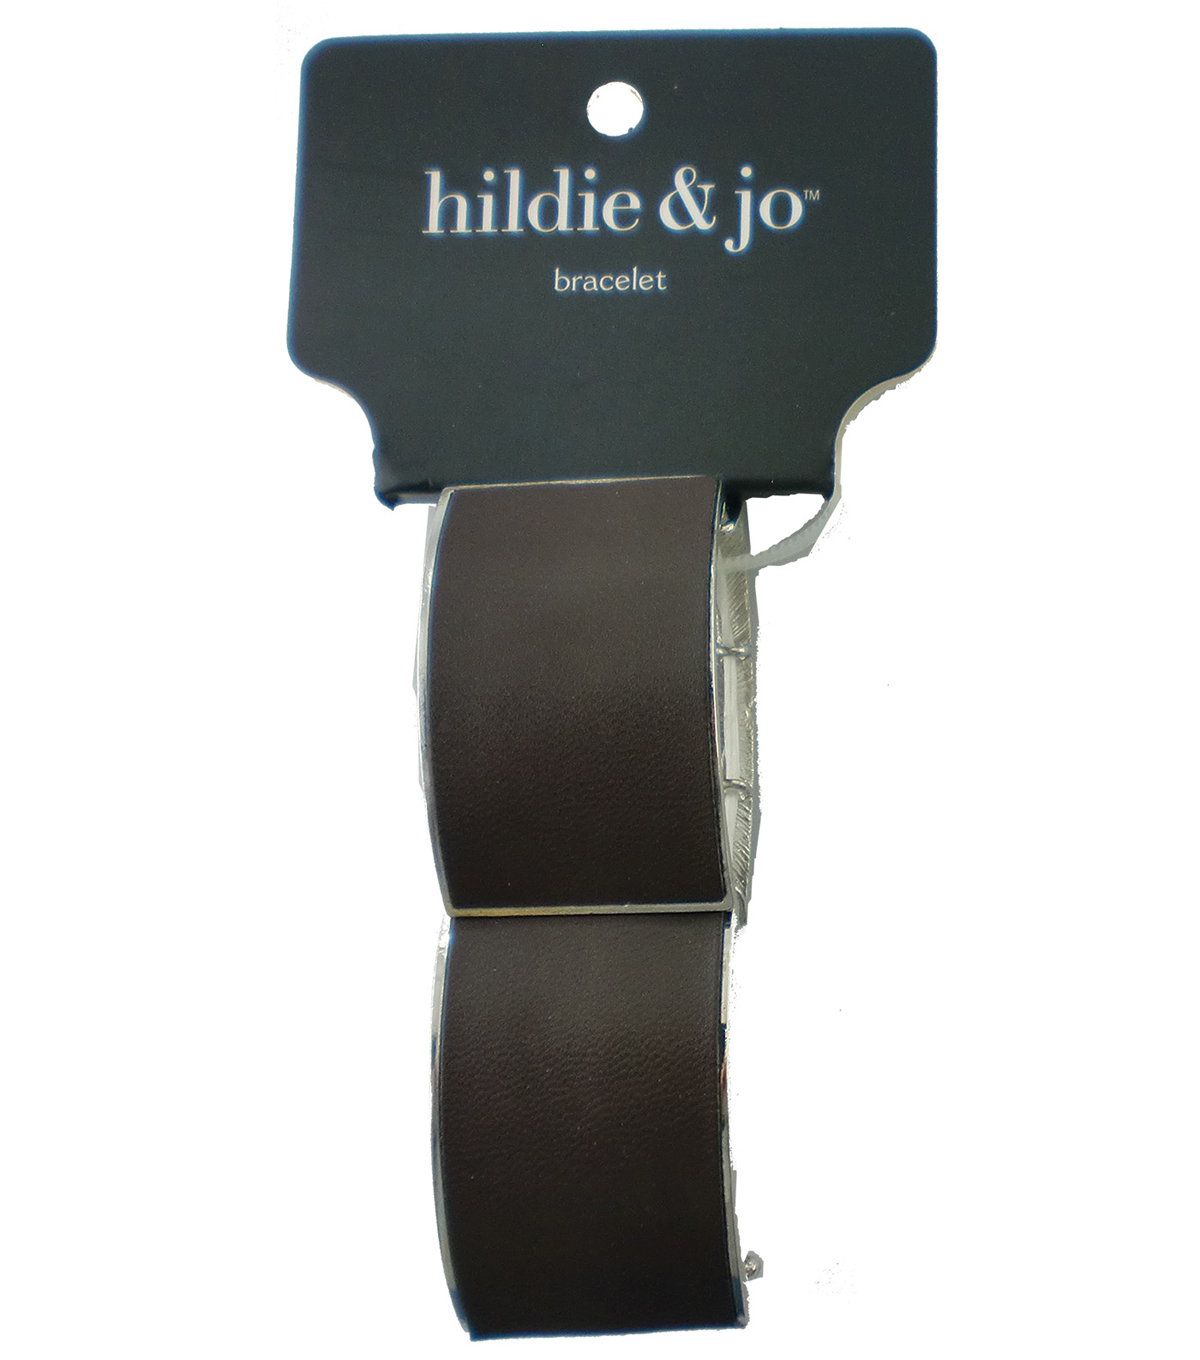 hildie & jo Square Stretch Bracelet-Silver & Brown